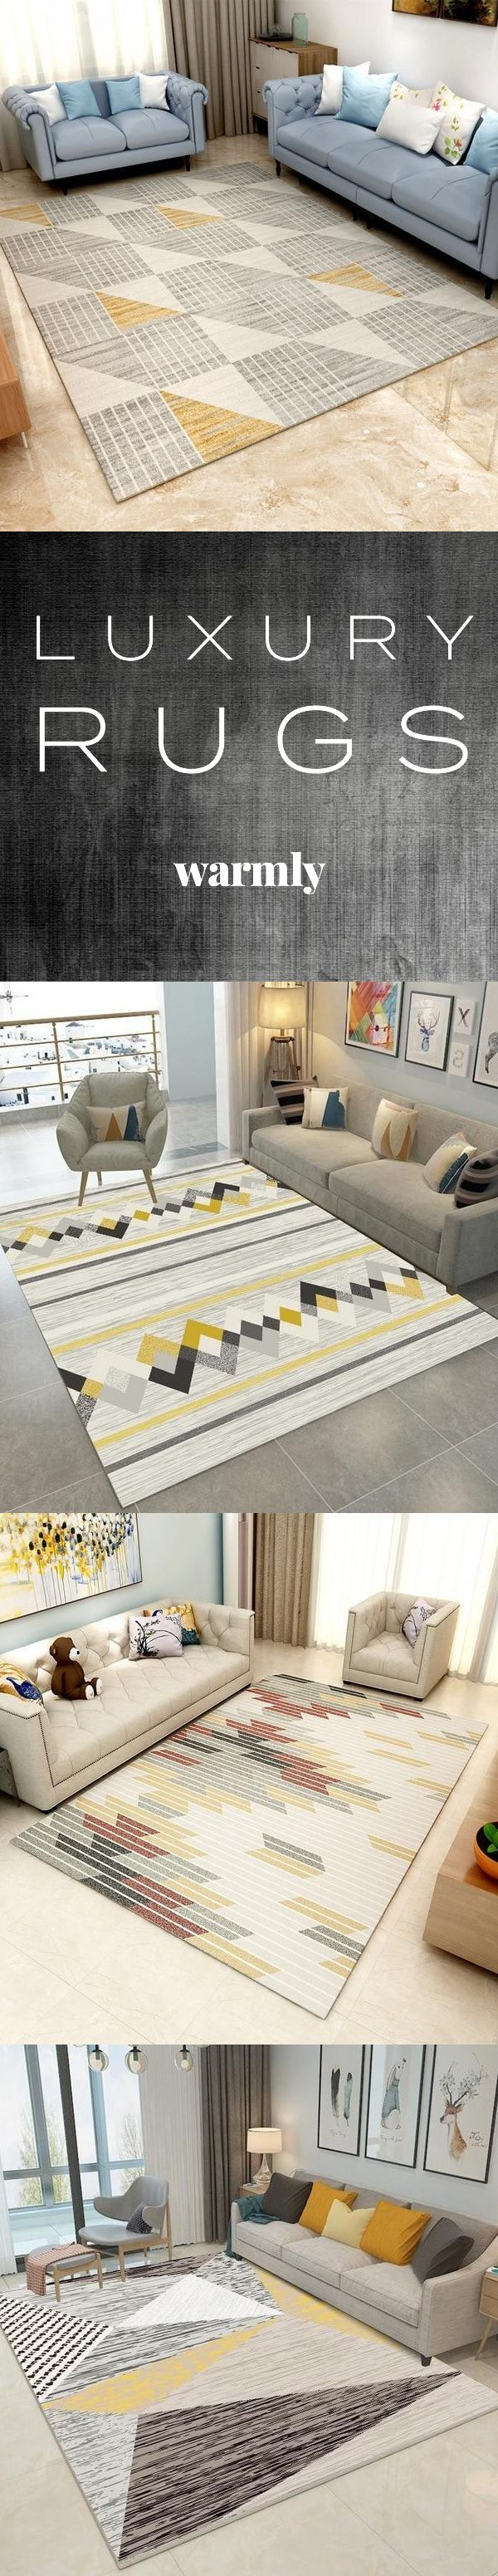 Luxurious Rugs from Warmly - ★★★★★ (5/5)